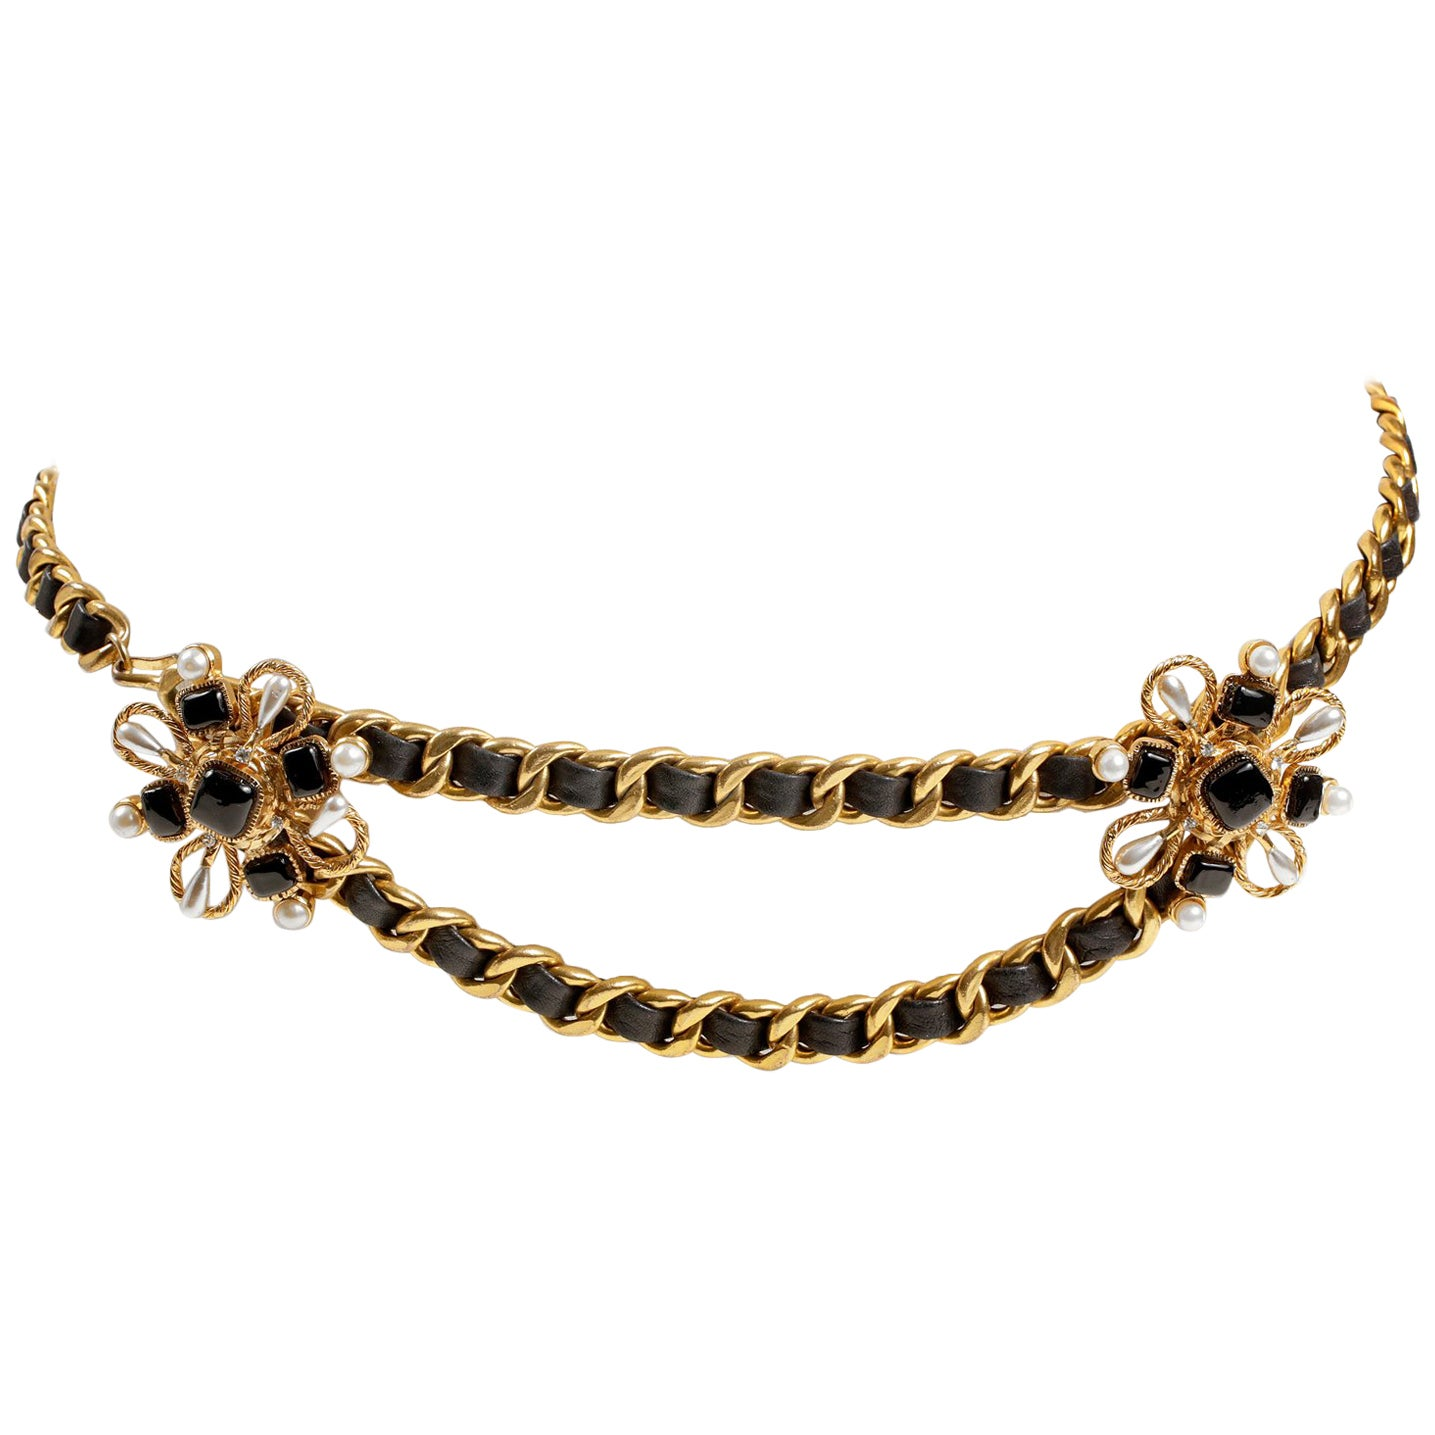 Chanel Black Enamel and Pearl Camellia Double Chain Belt